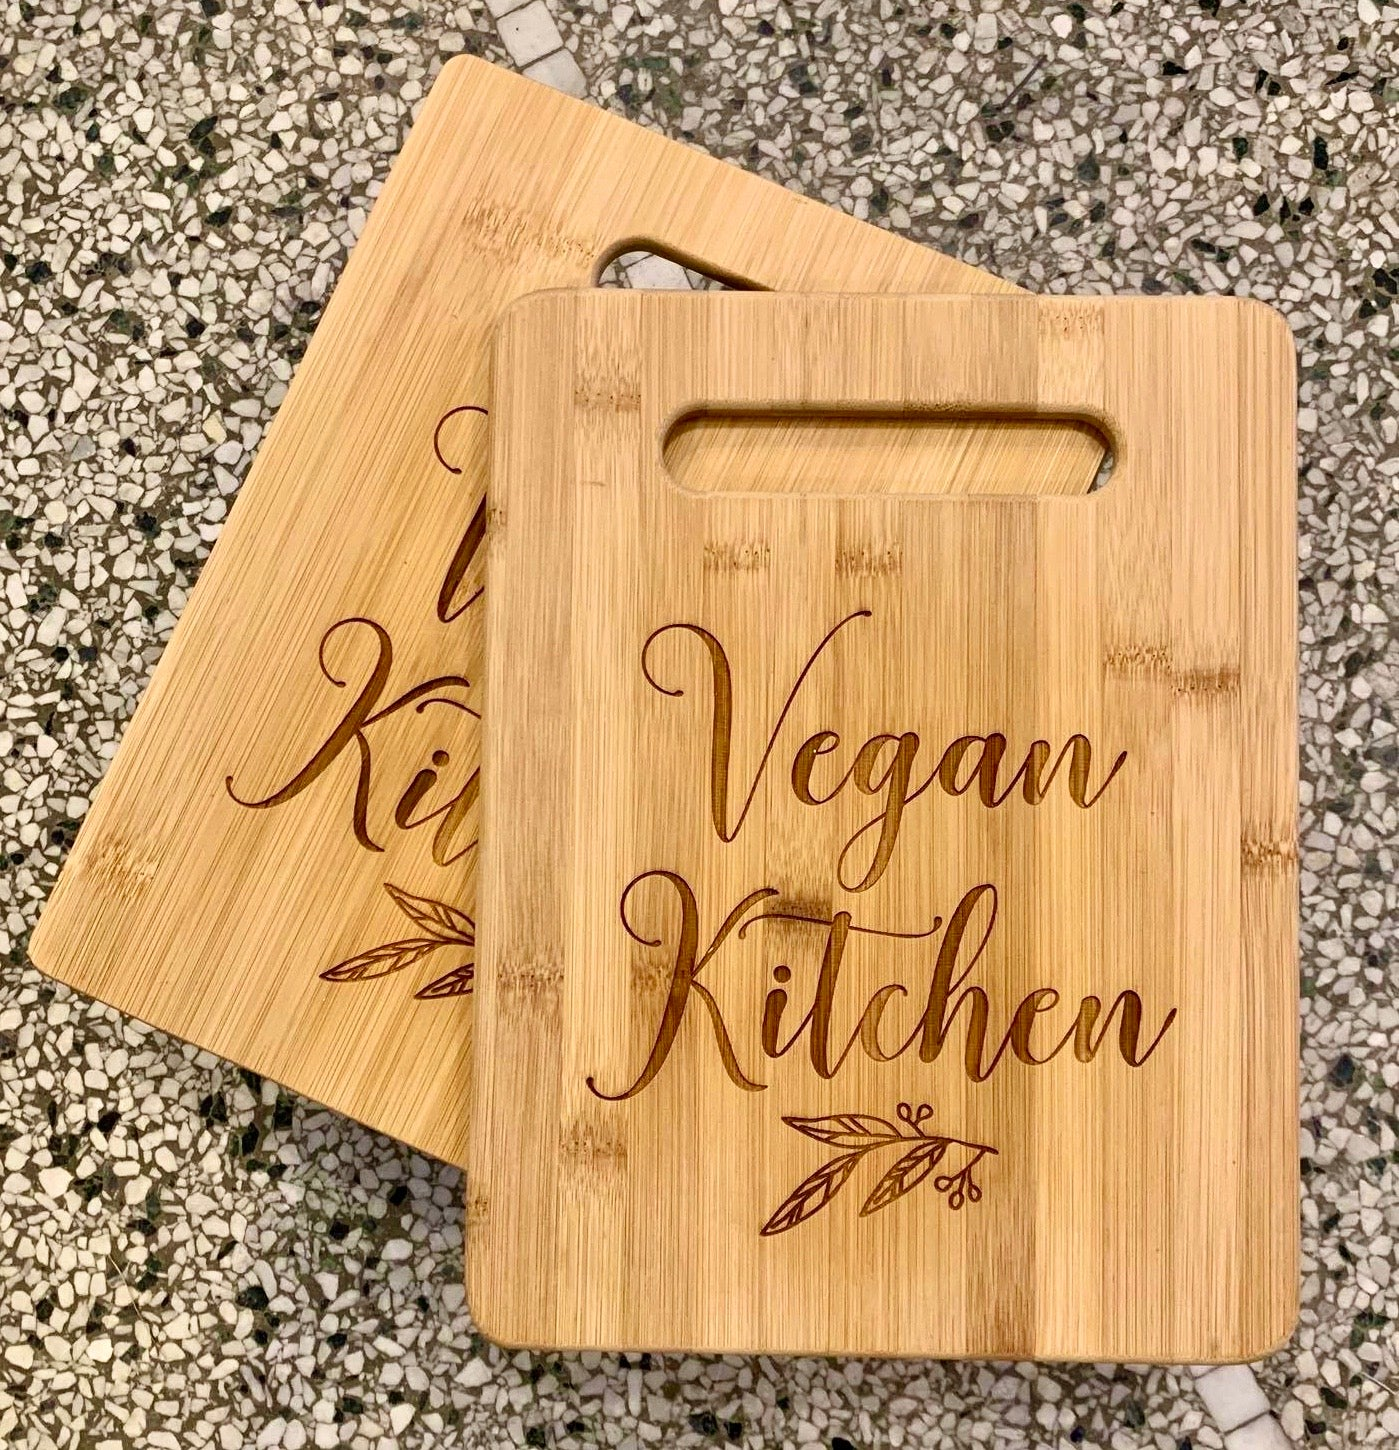 Vegan Cutting Board. Veggies only! WI Made